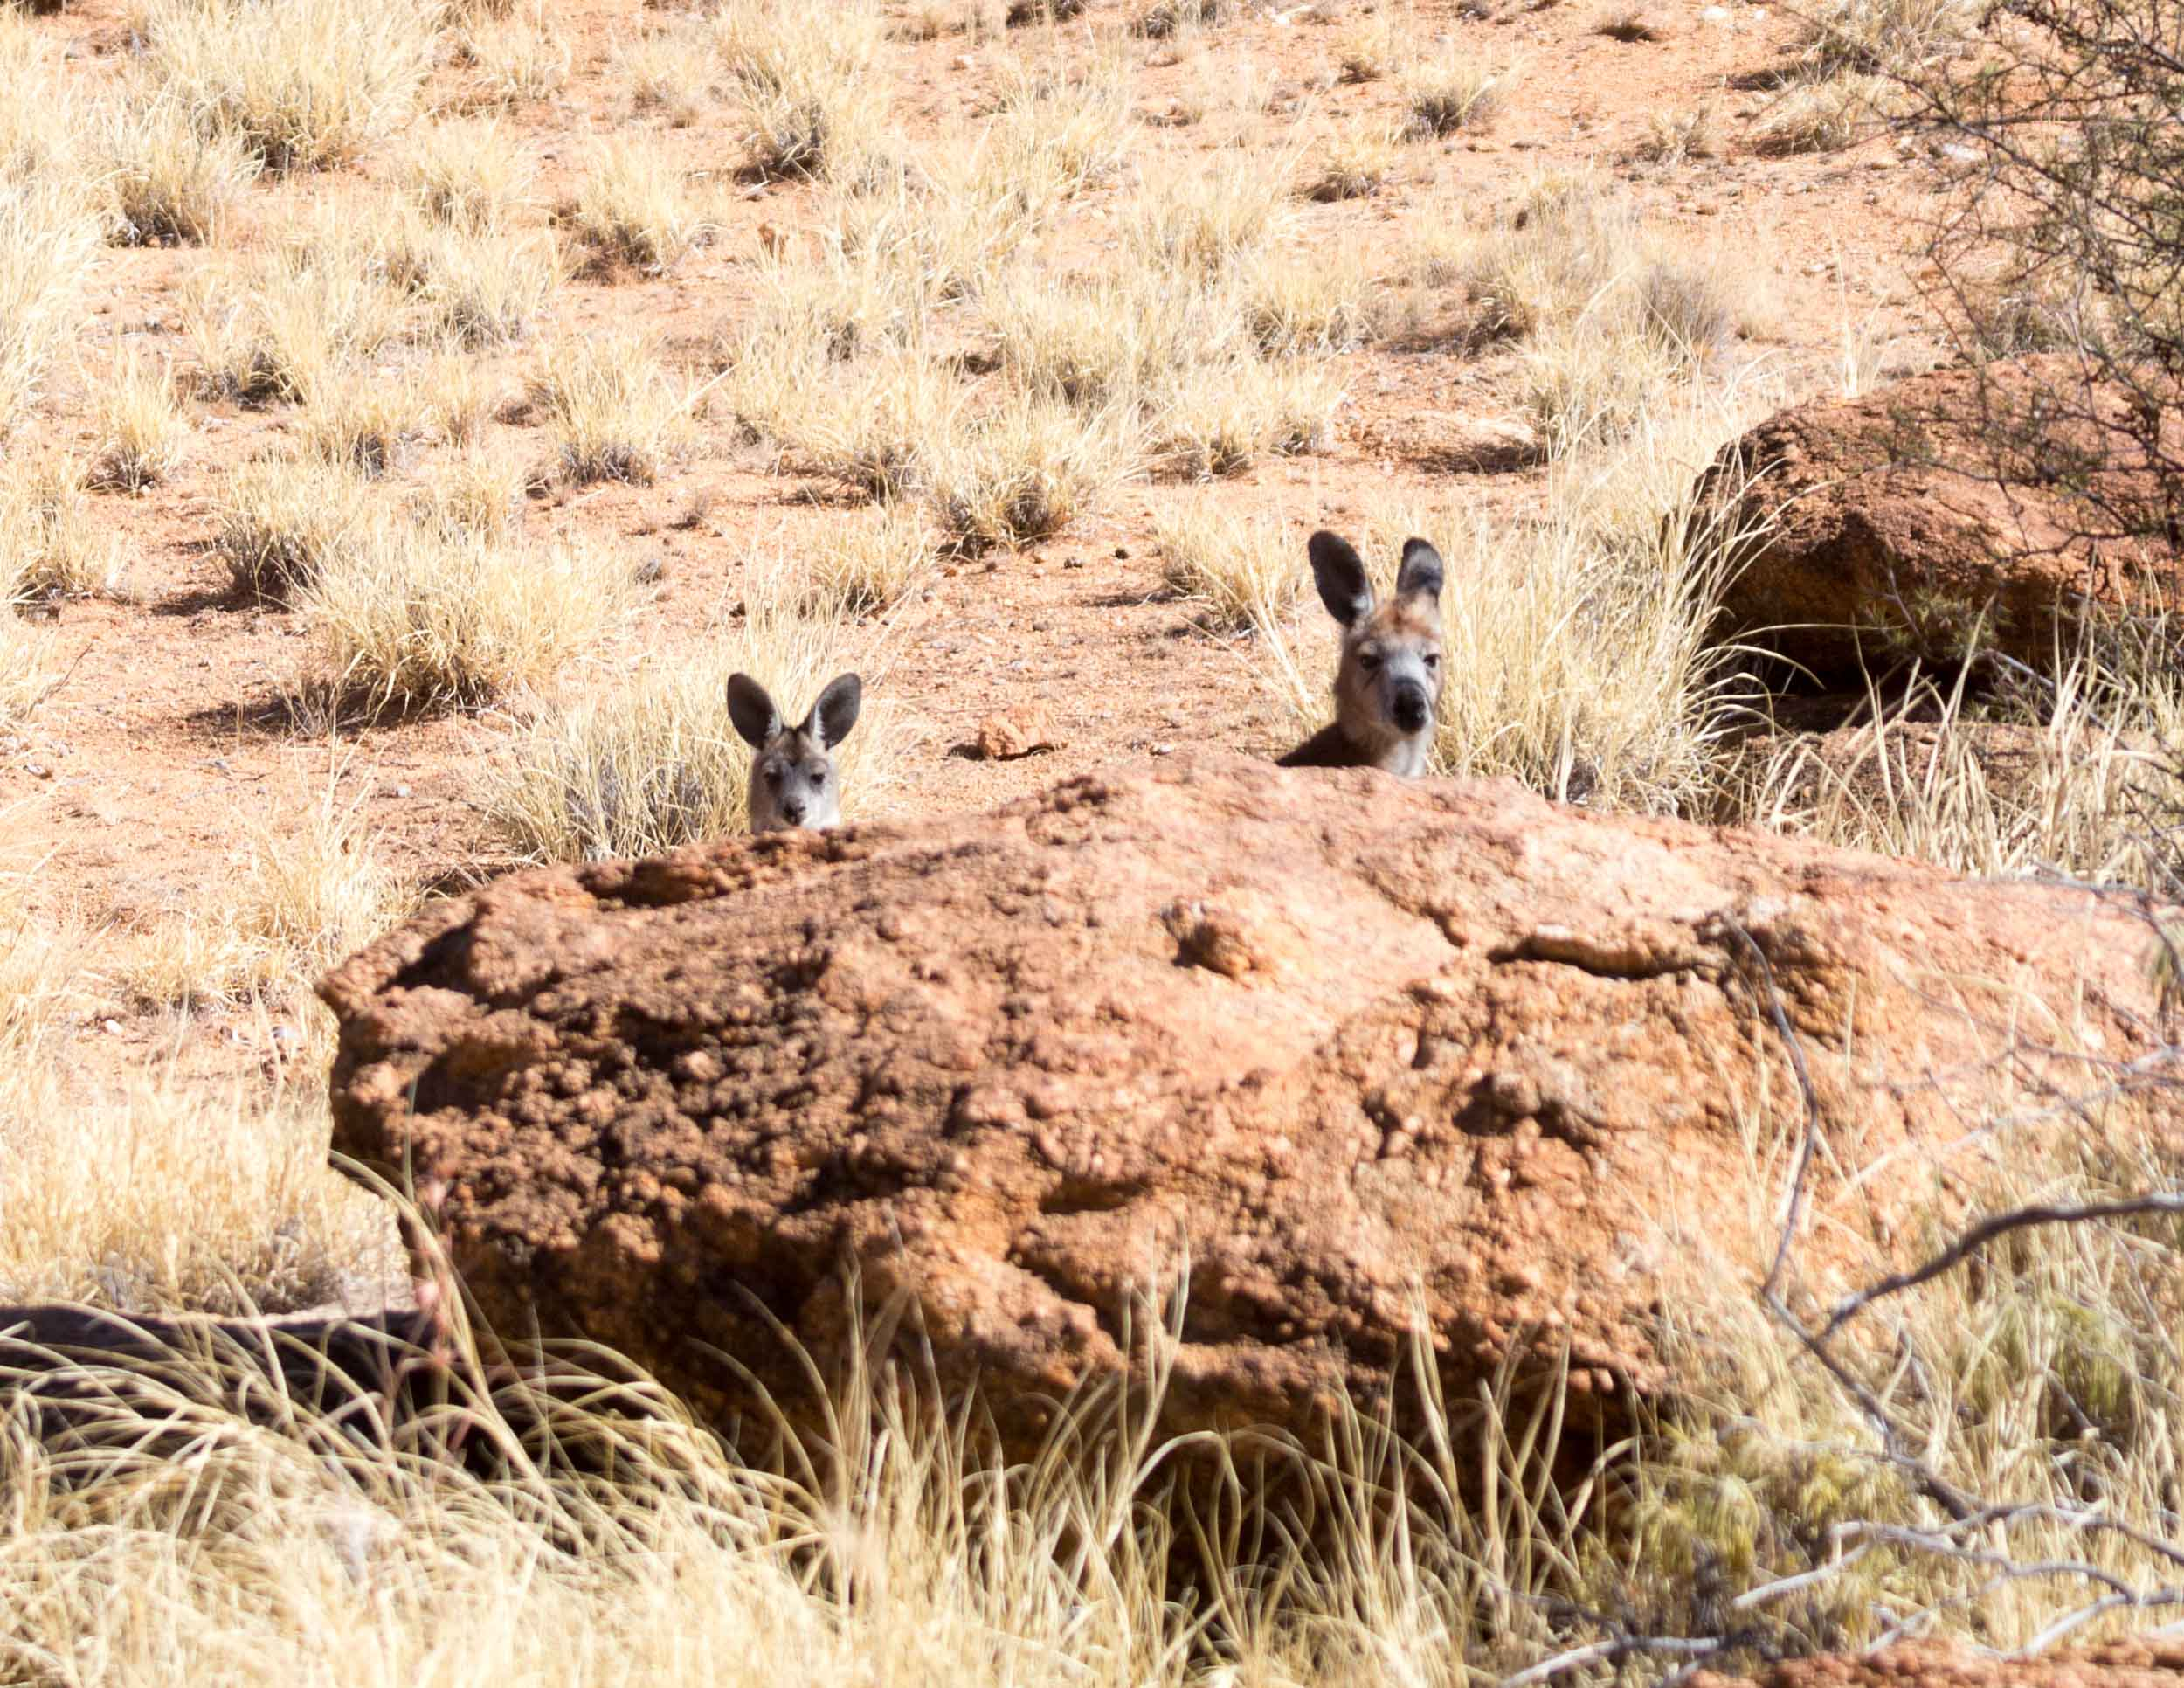 Wallaroos in Alice Springs Telegraph Station